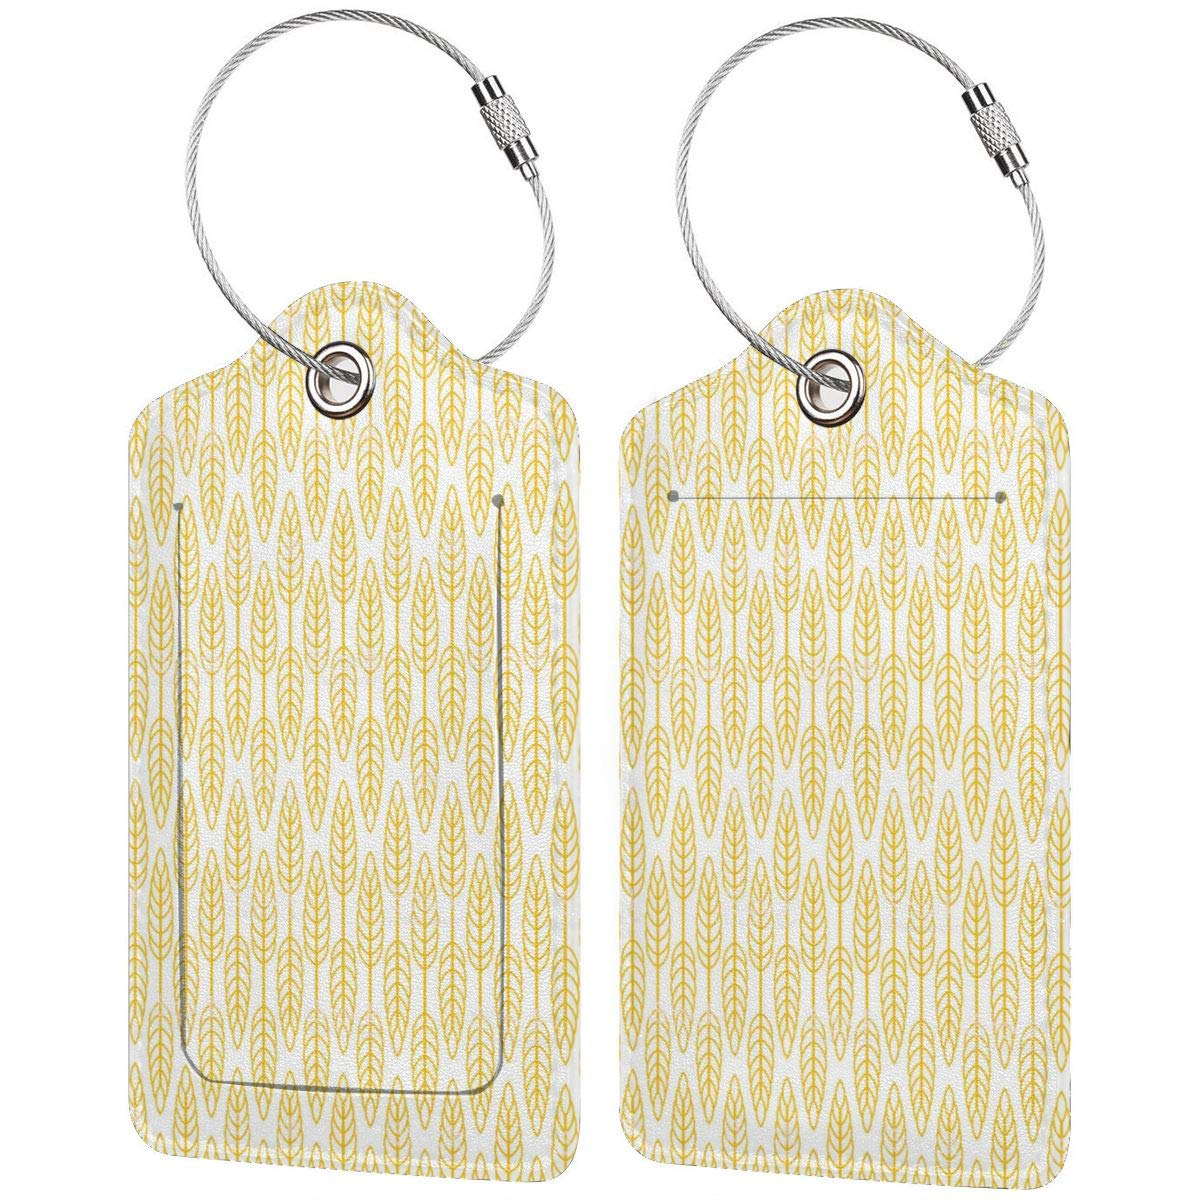 Wheat Leather Luggage Tags Personalized Extra Address Cards With Privacy Flap